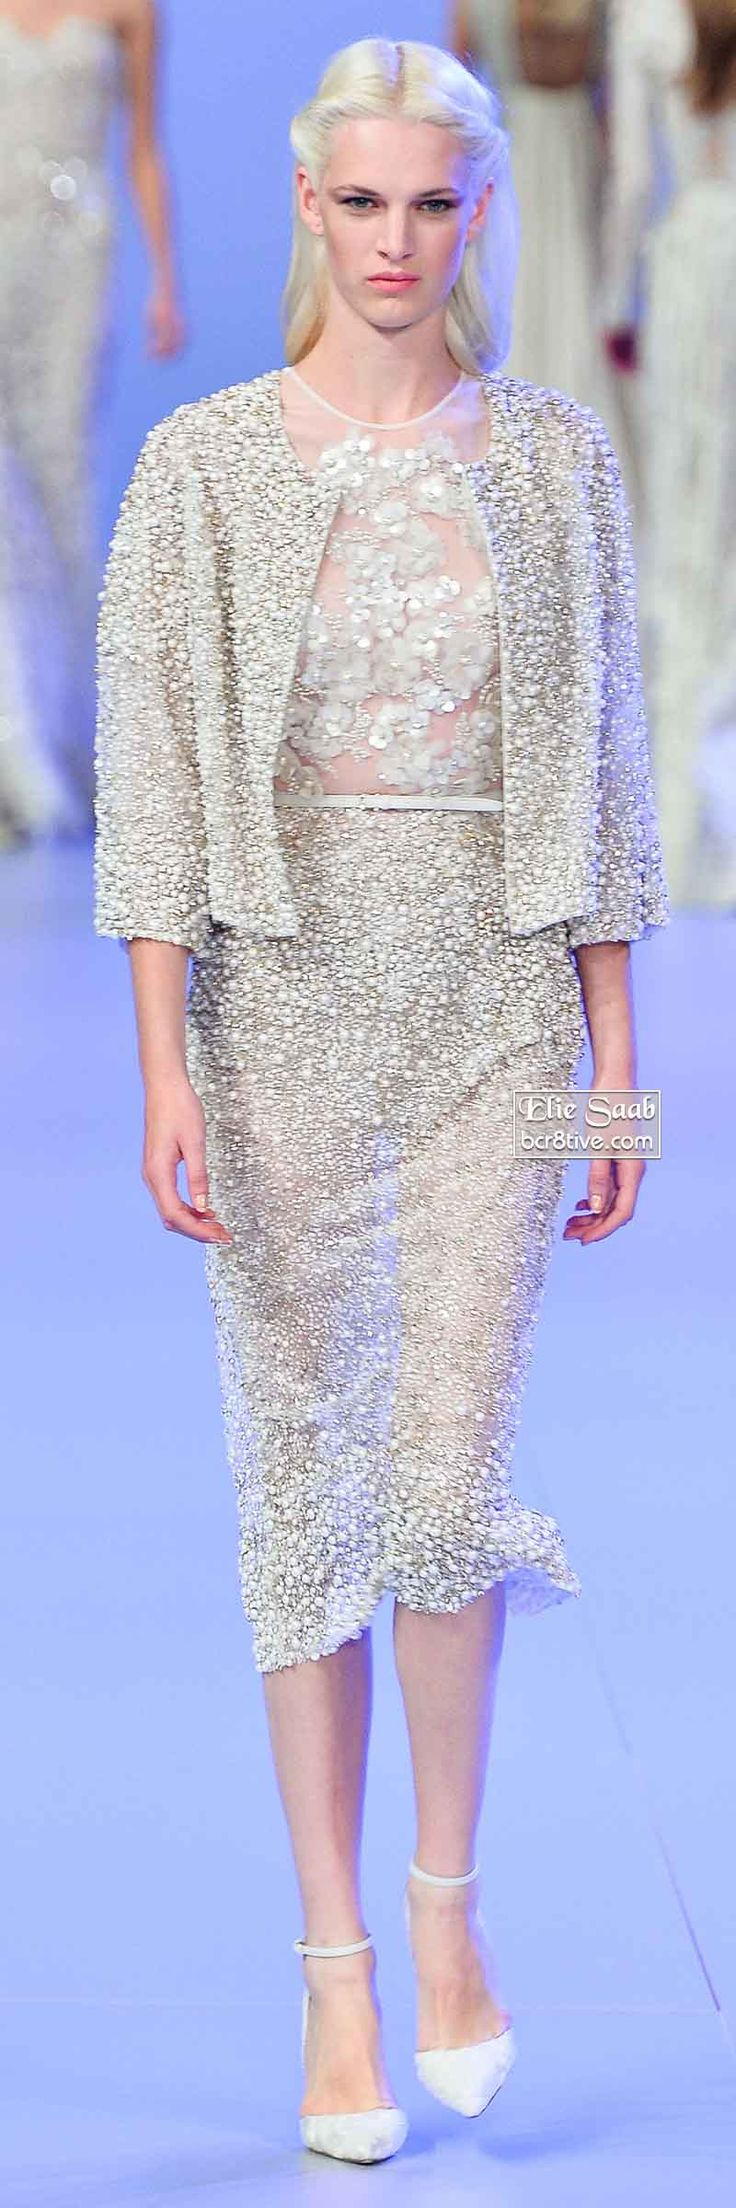 Elie Saab Spring 2014 Couture Collection